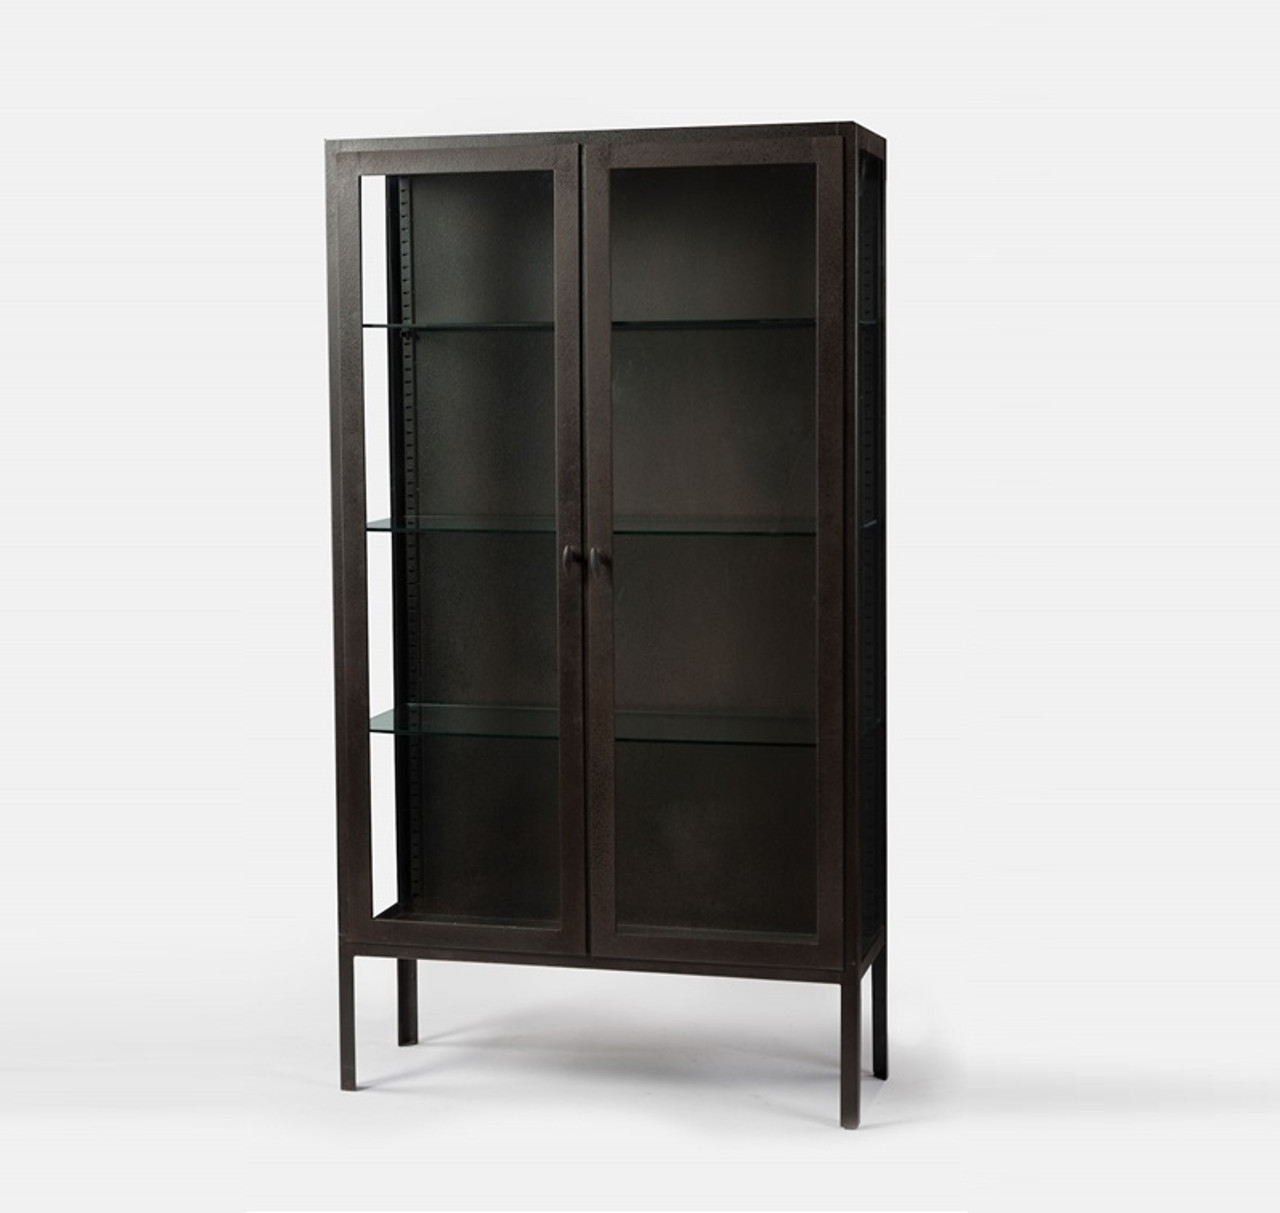 Trenton Aged Black Metal Display Cabinet With Glass Doors